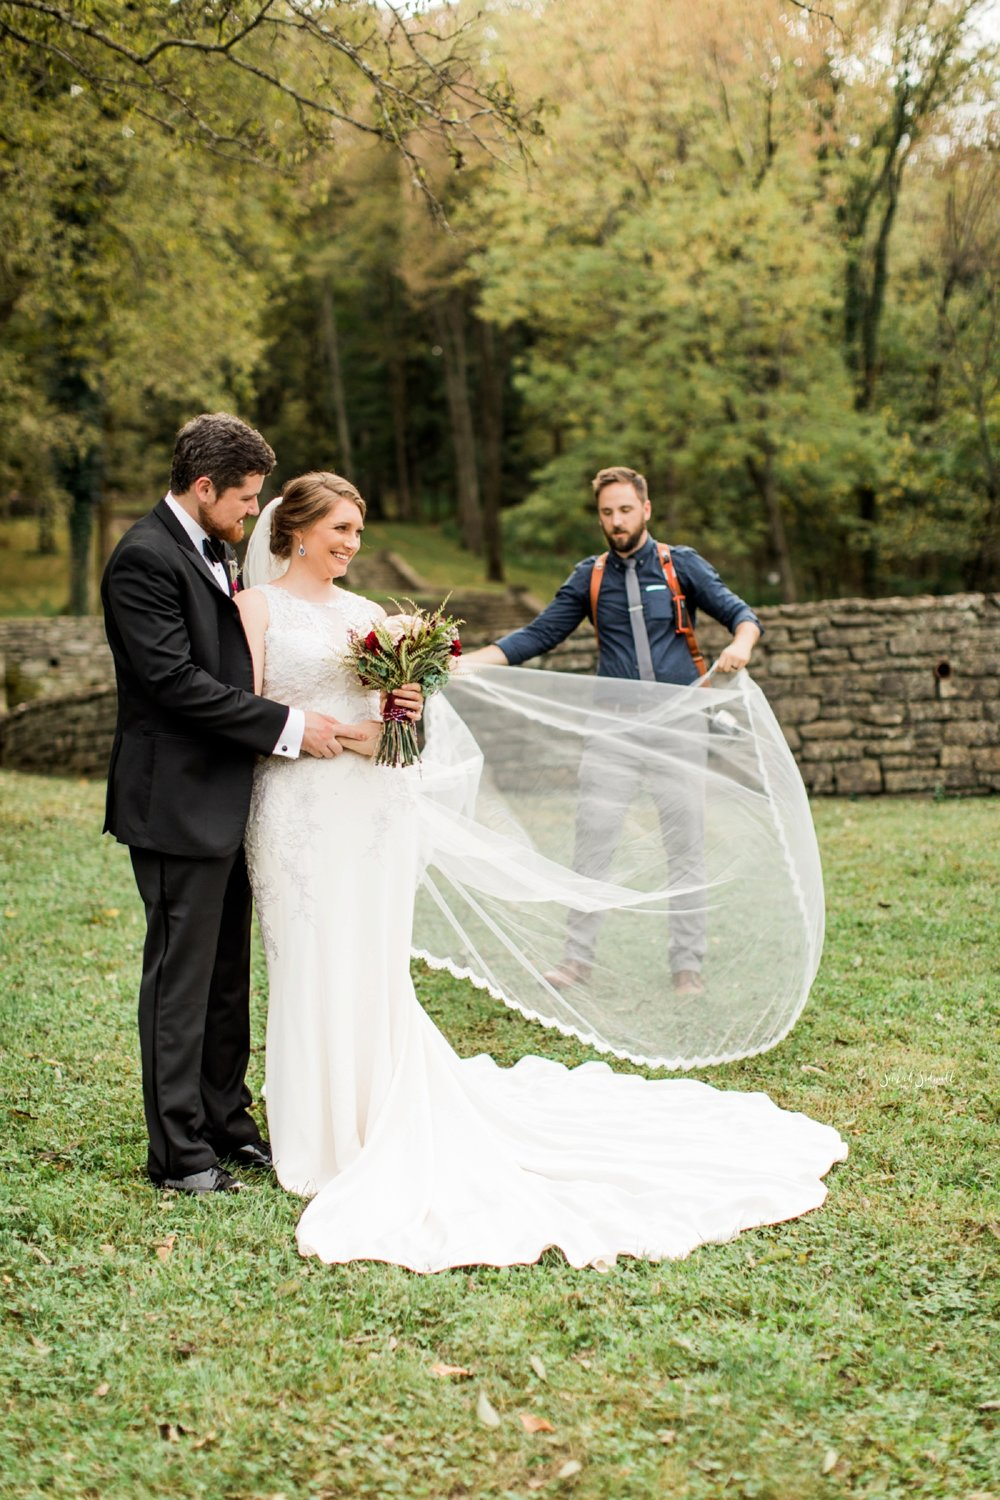 Wedding photography by Sarah Sidwell Photography.